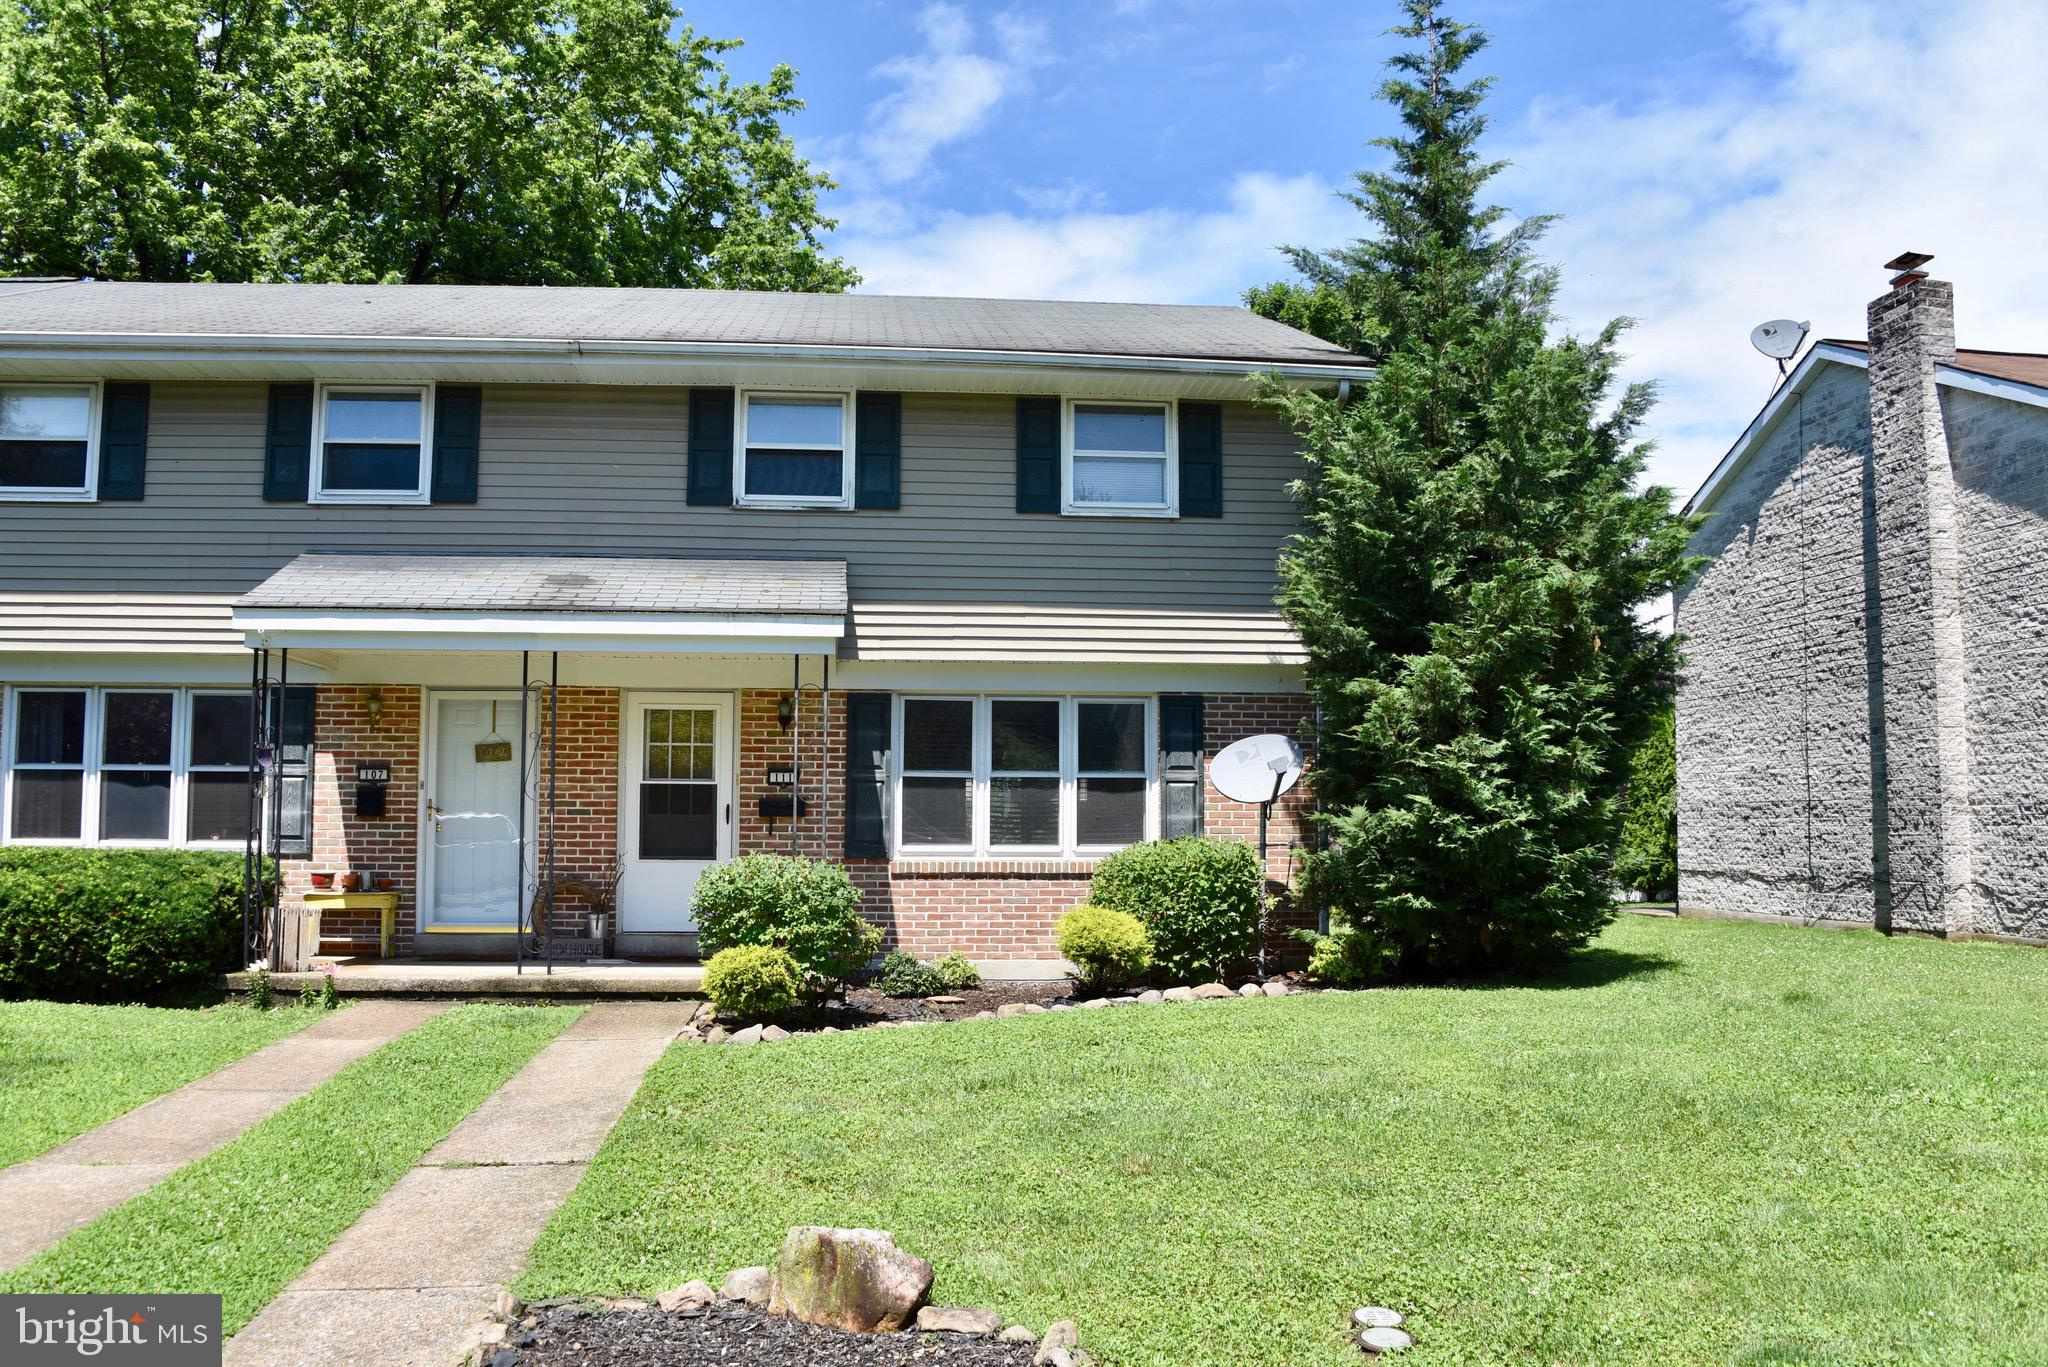 111 PENNBROOK AVENUE, ROBESONIA, PA 19551